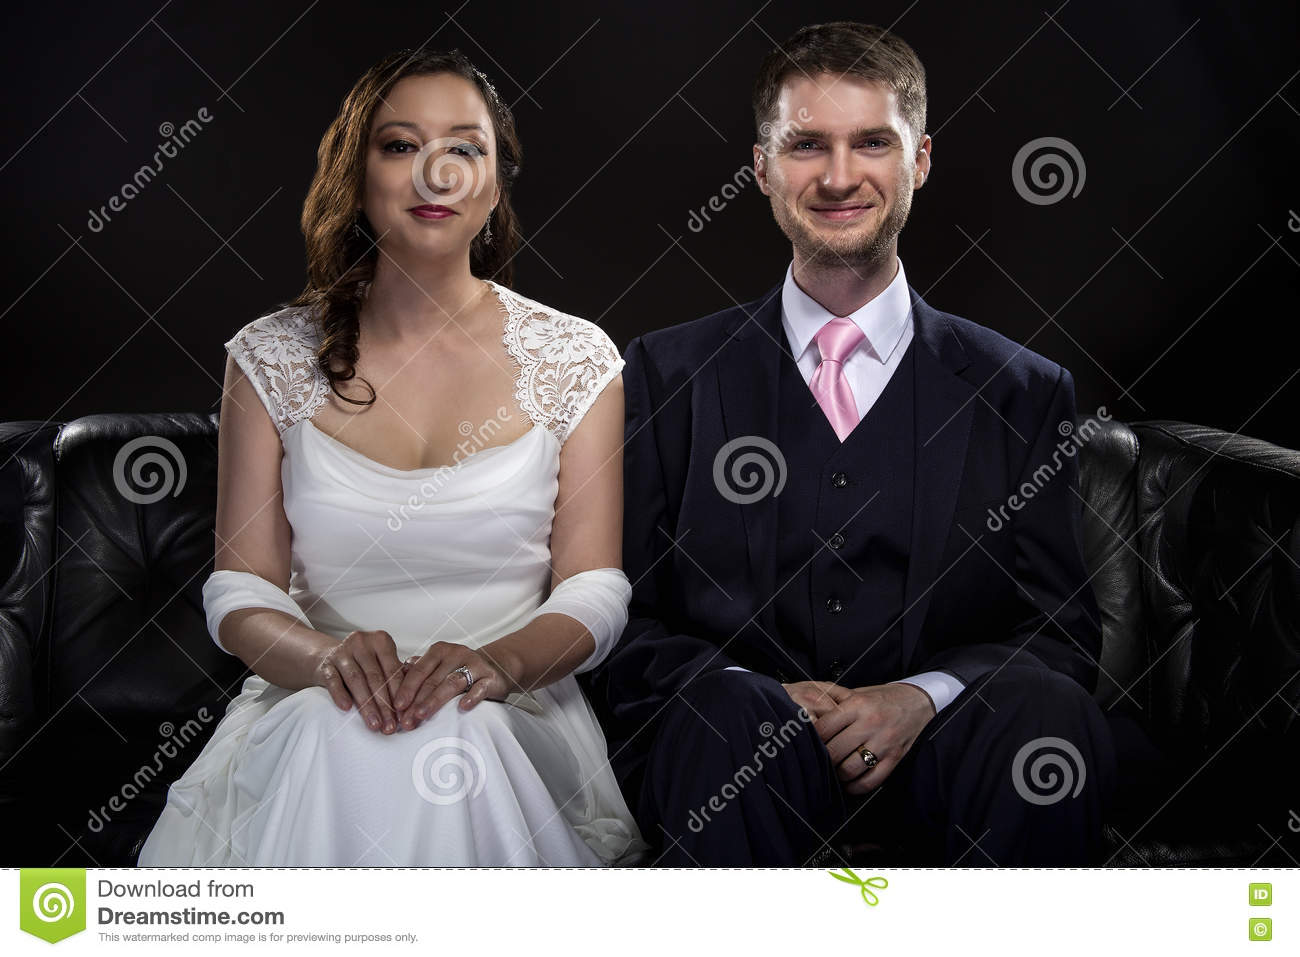 Engaged Couple Modeling Art Deco Style Wedding Suit And Dress Stock